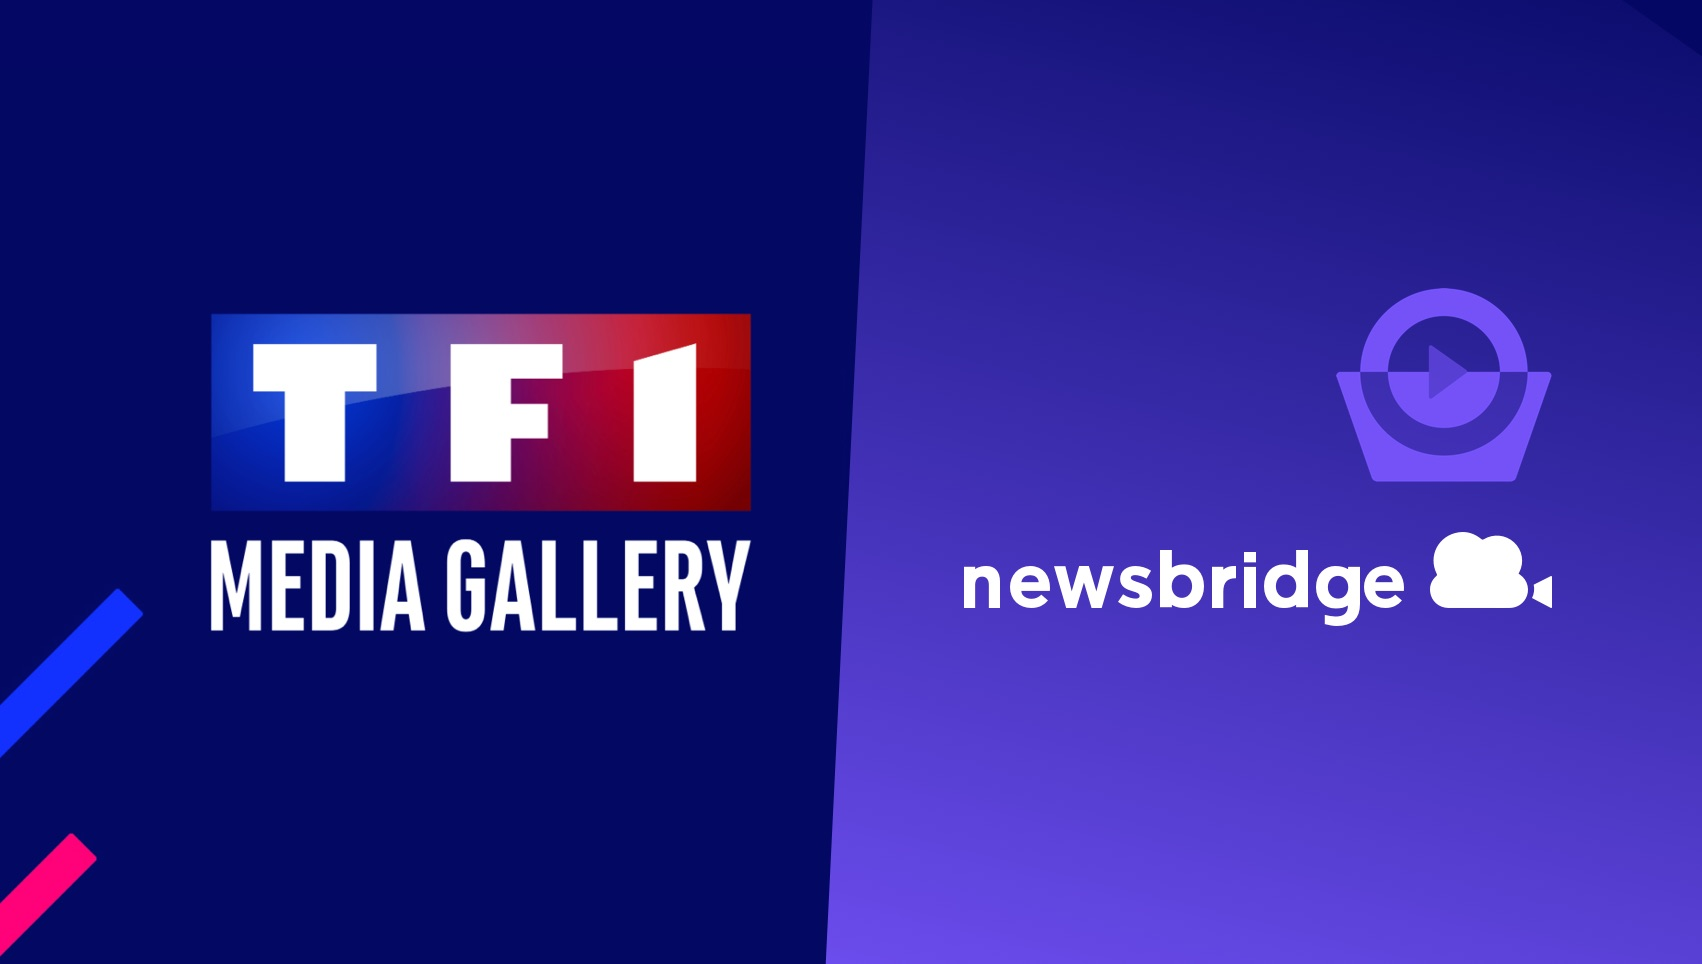 TF1 Group Partners with Newsbridge: TF1 MEDIA GALLERY Platform